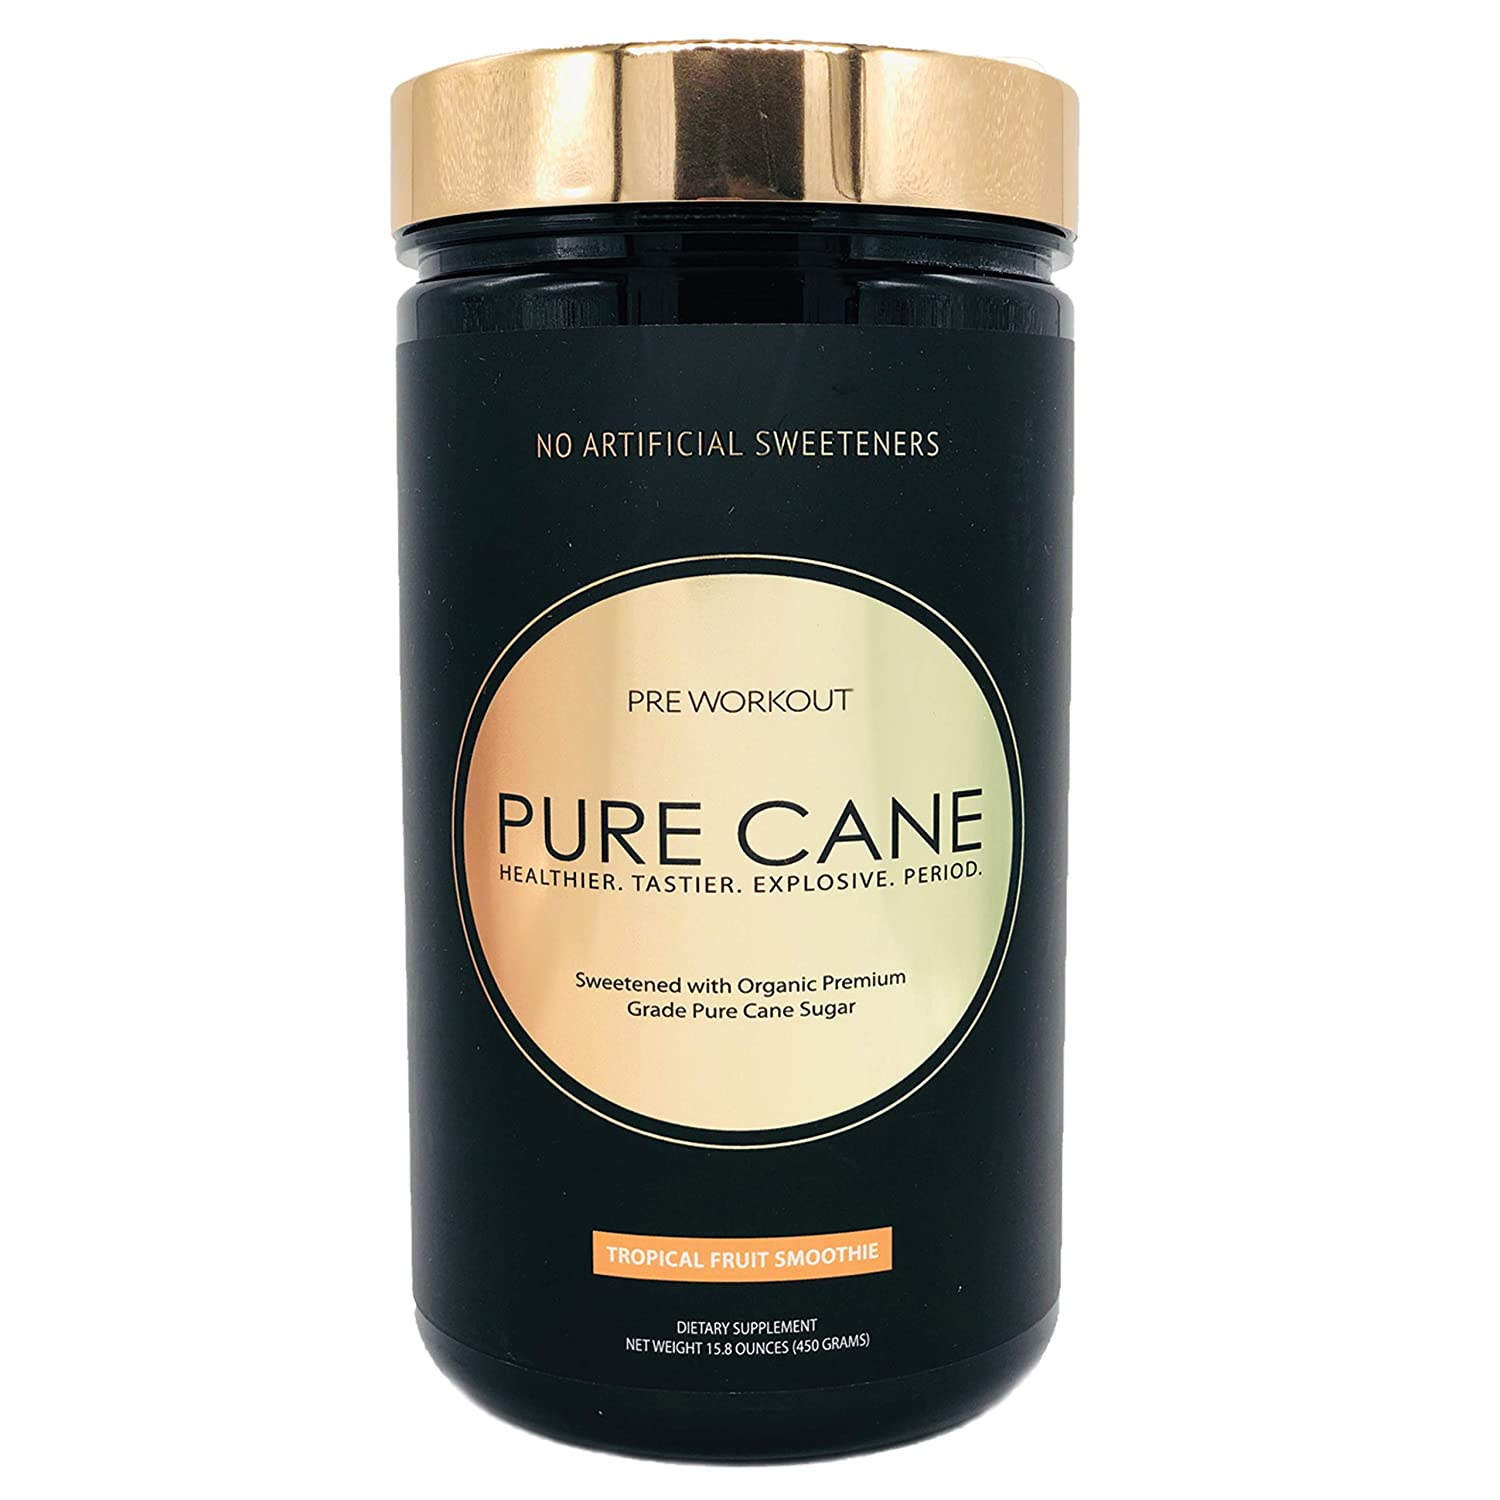 Pure Cane Natural Pre Workout – No Artificial Sweeteners, Explosive Energy, Great Taste, Creatine for Strength Gains Nitric Oxide Boosters for Insane Pumps – Tropical Fruit Smoothie